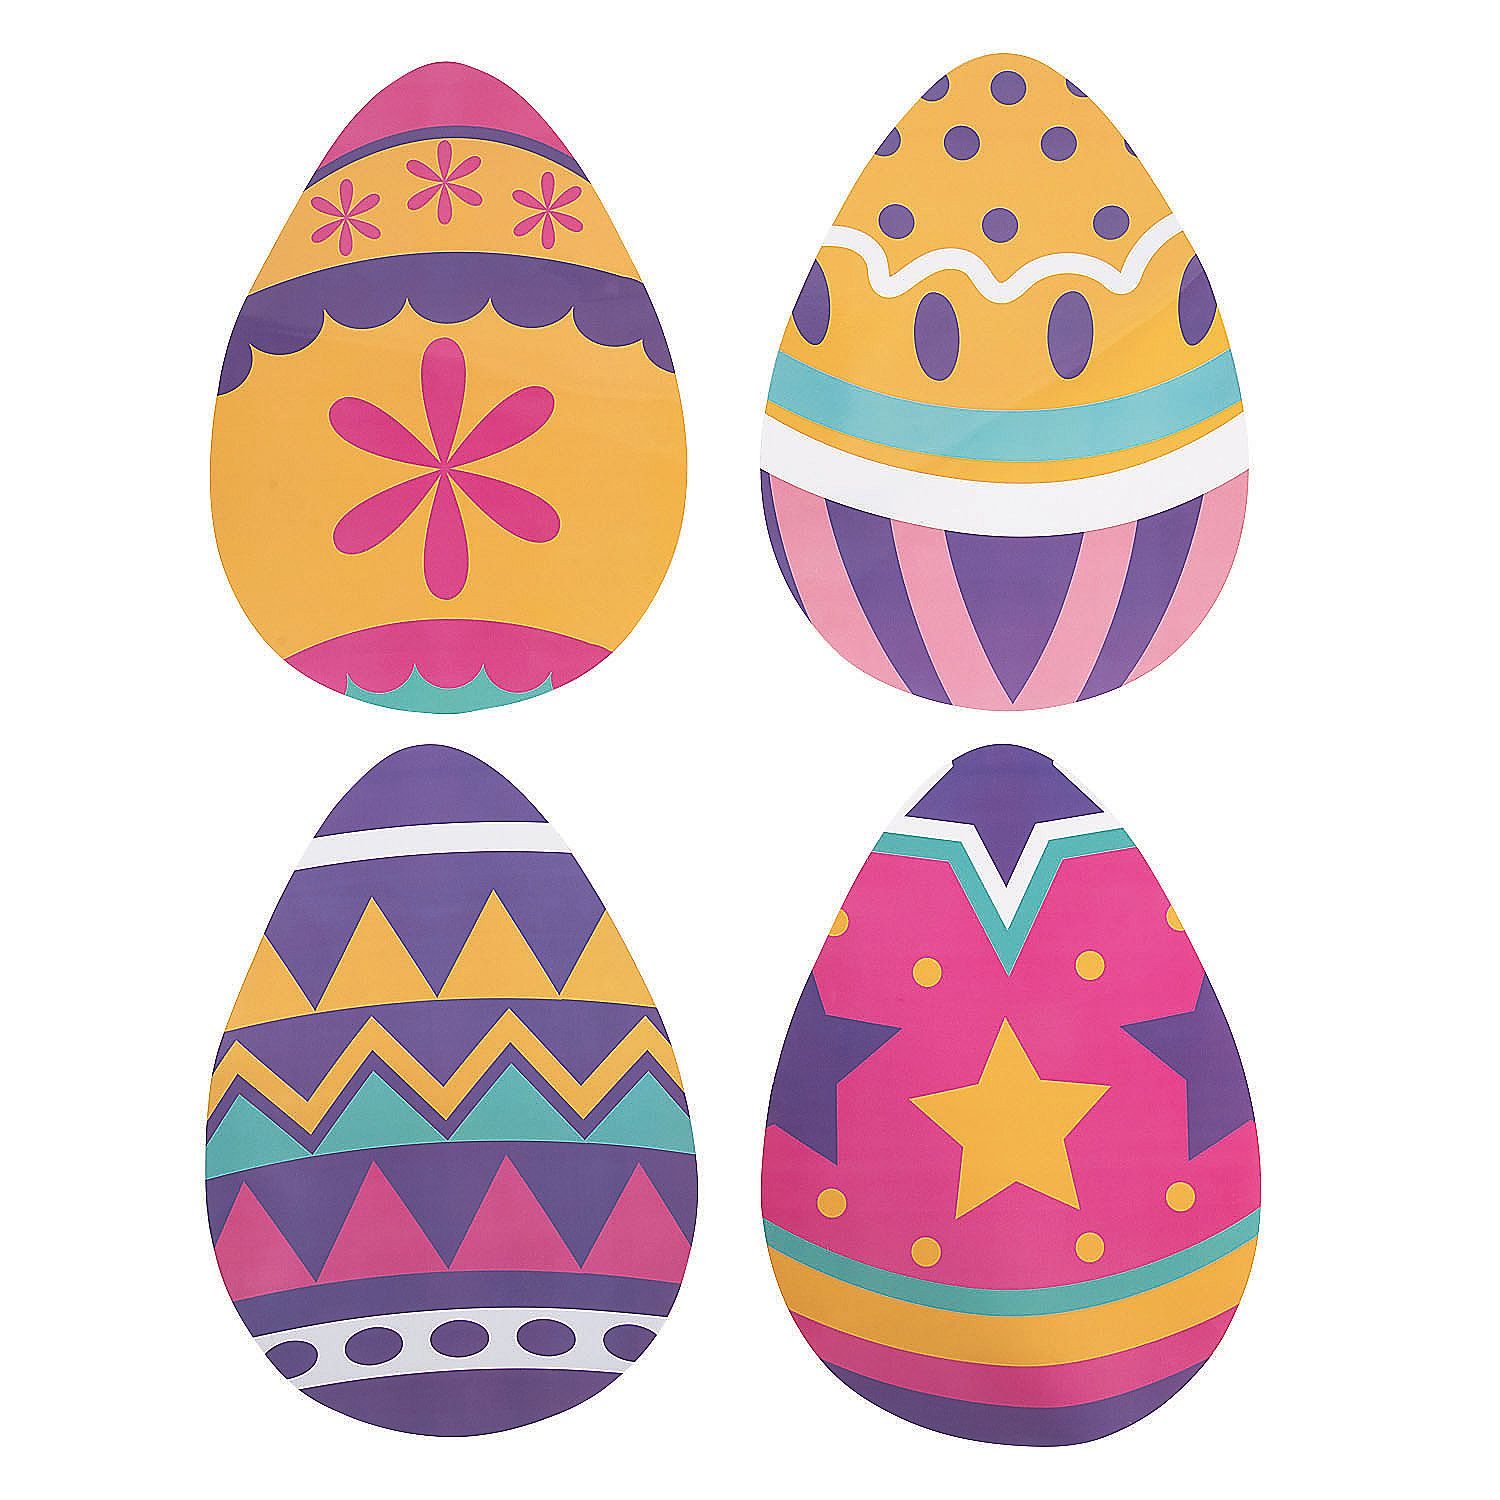 12 Pieces Containers /& Boxes Party Supplies Plastic Containers Filled Resurrection Eggs for Easter Fun Express Easter